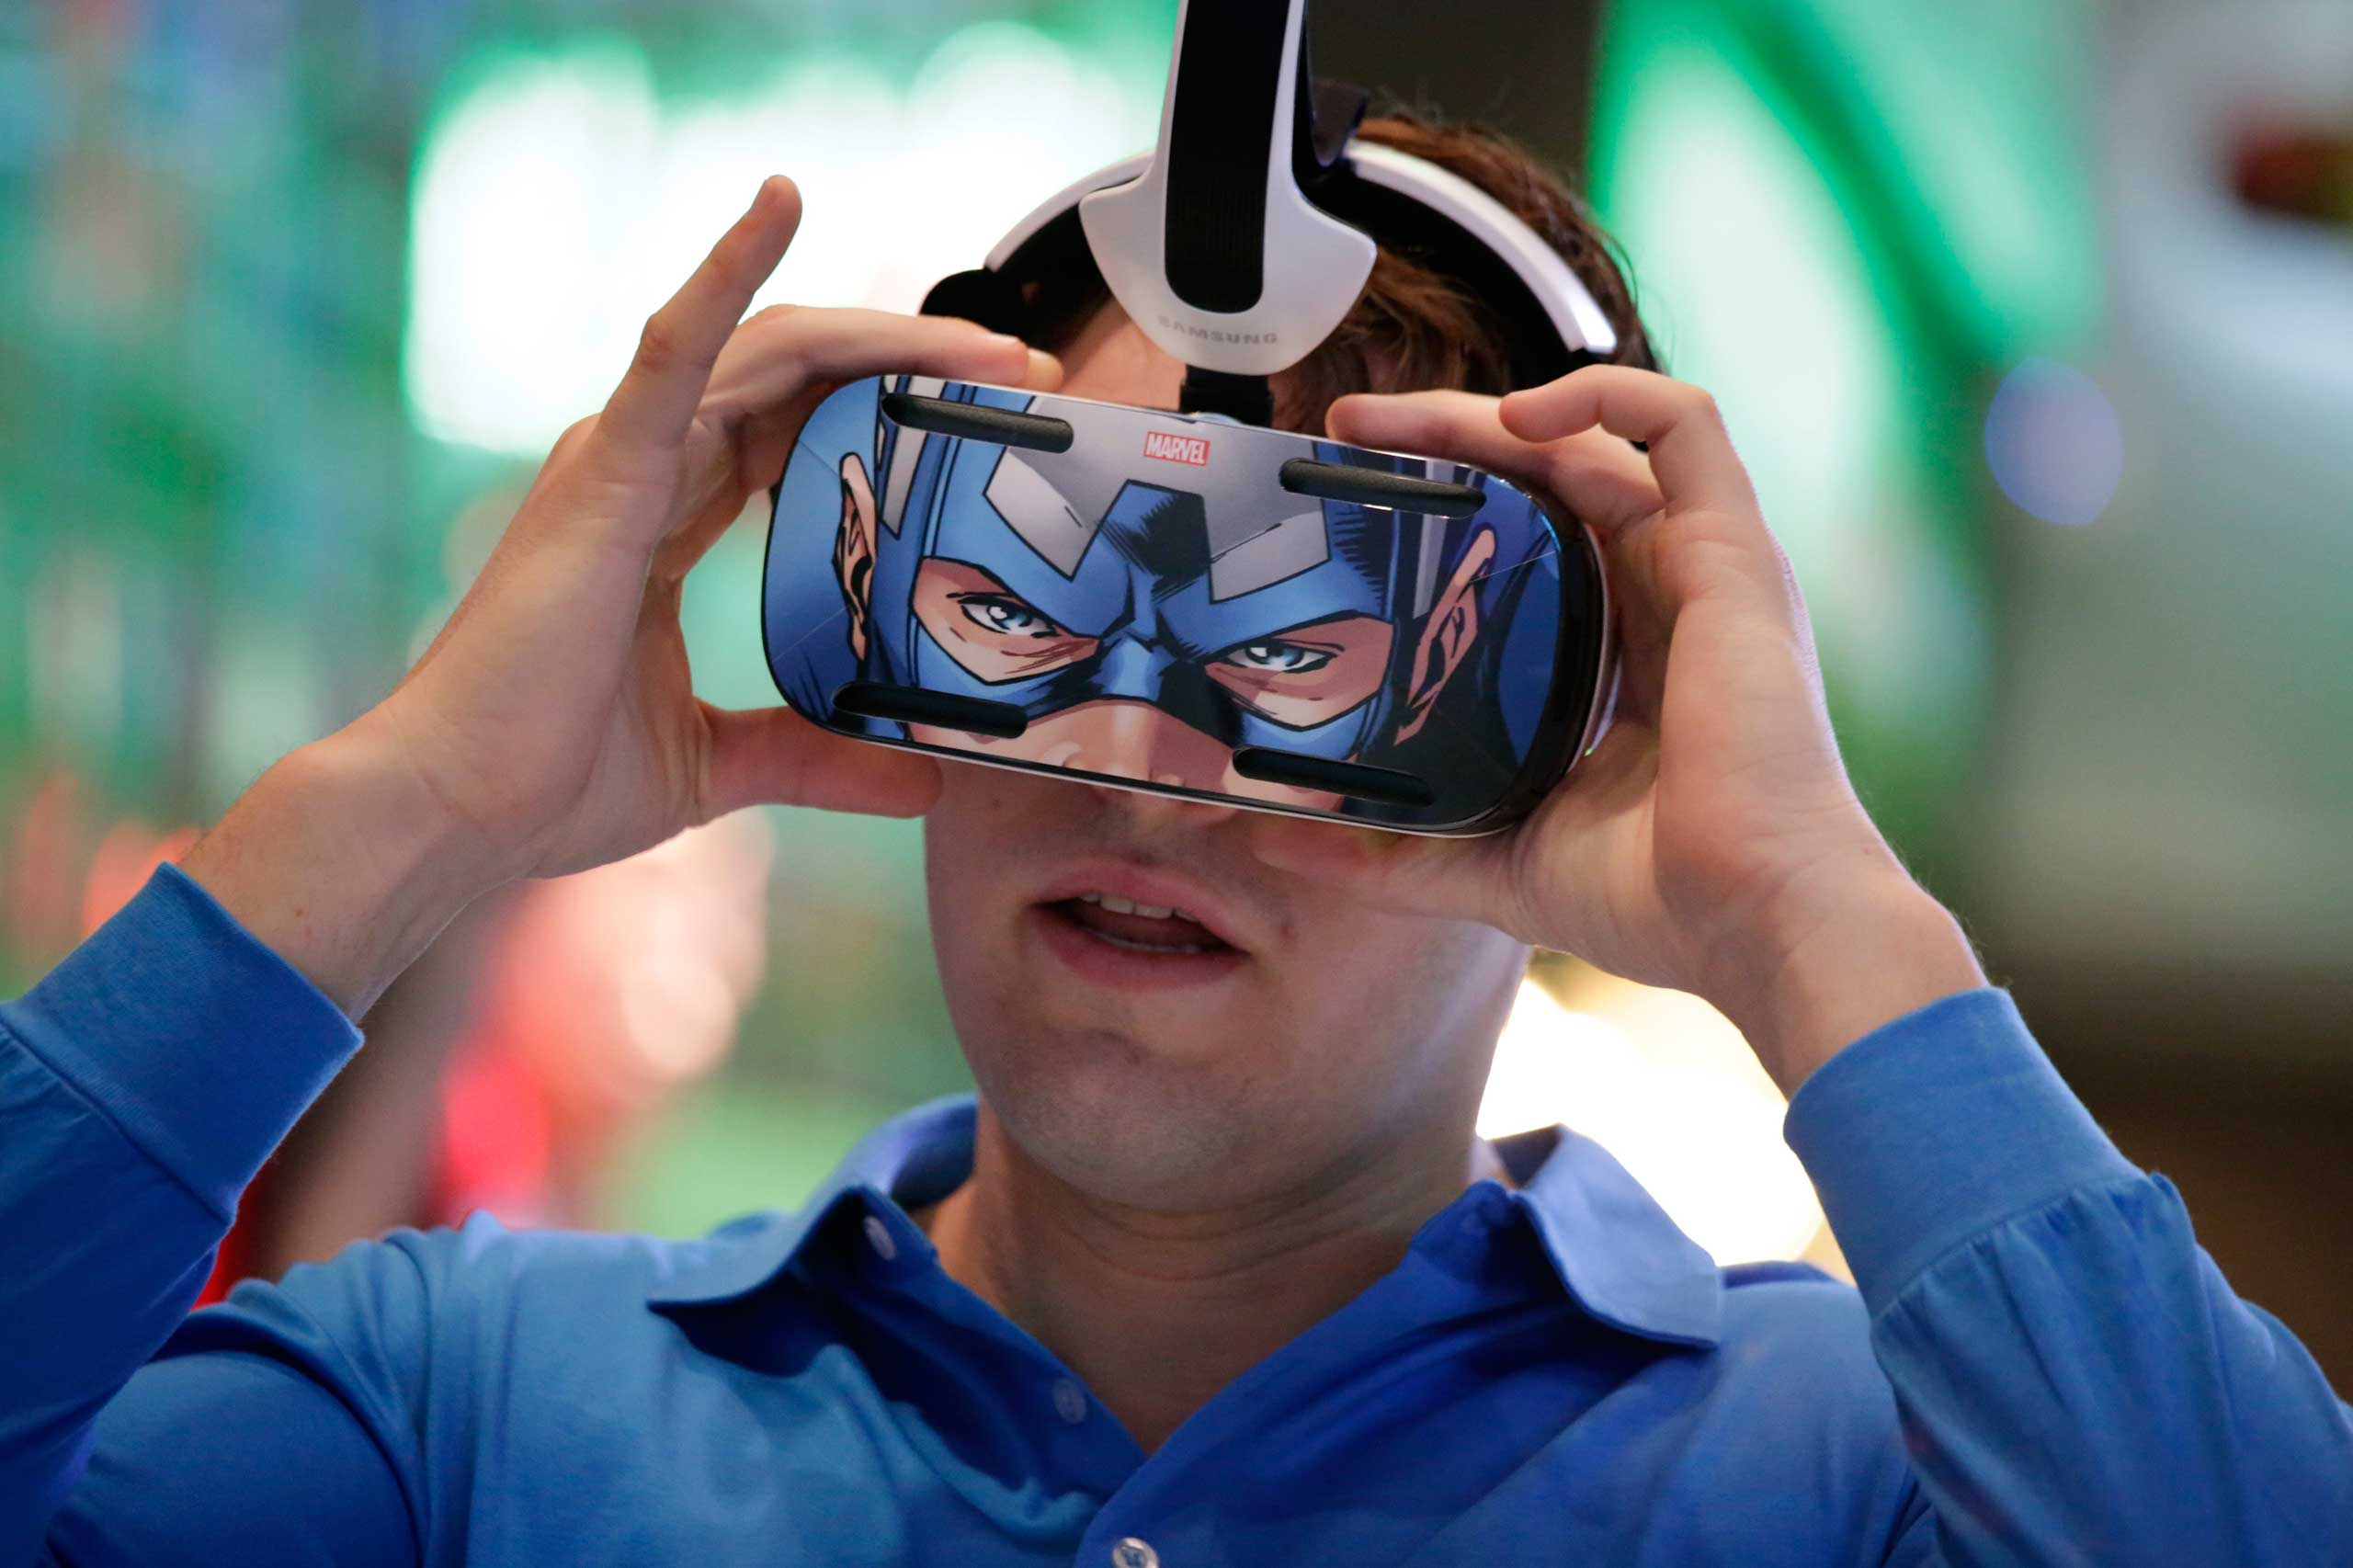 A brand ambassador tests Samsung's Gear VR headset at the Samsung Galaxy booth on Jan. 6, 2015.